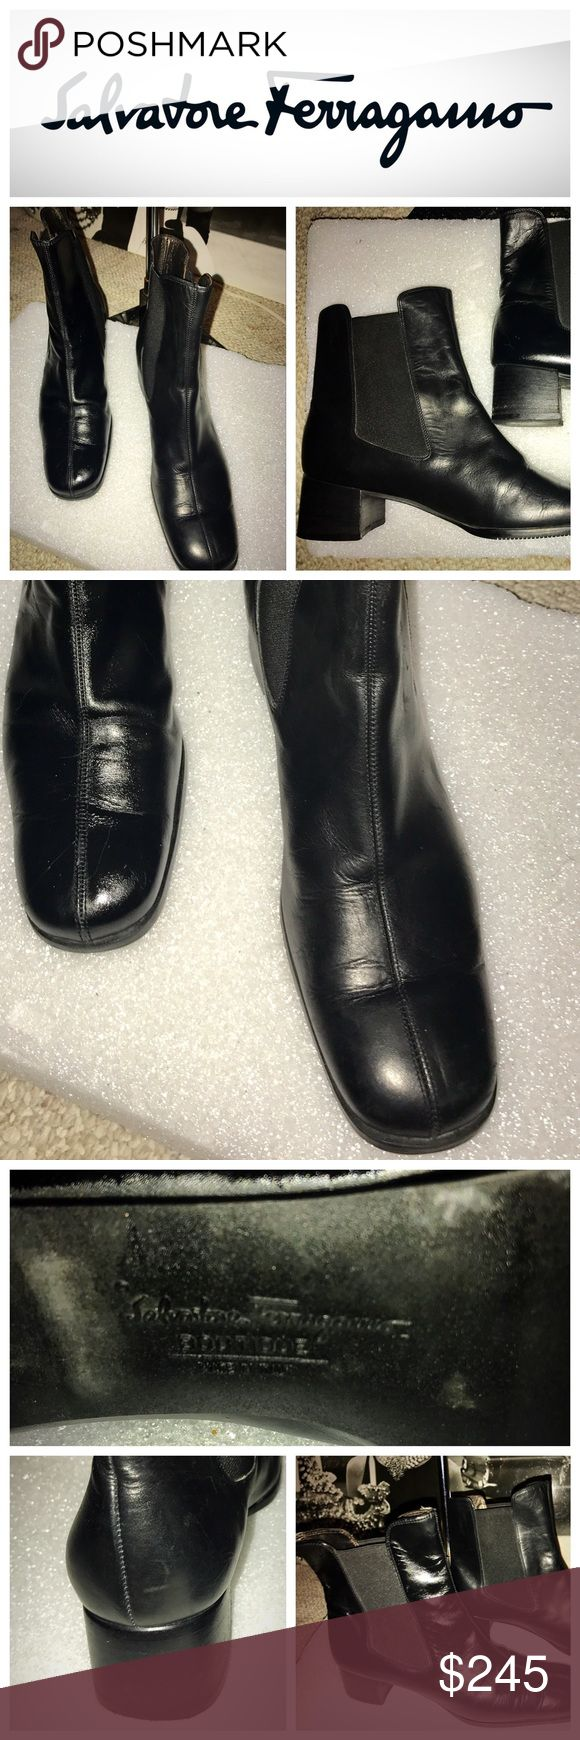 Ferragamo Black Leather Ankle Boots, Gently Worn Ladies , you will love these Classic ankle boots by Salvatore Ferragamo in a size 8 1/2. Used about 5 or 6 times they are in pristine condition. They are slip on with stretchy material on each side. perfect with skinny jeans. or leggings and a baggy sweater. They are retro and chic Salvatore Ferragamo Shoes Ankle Boots & Booties